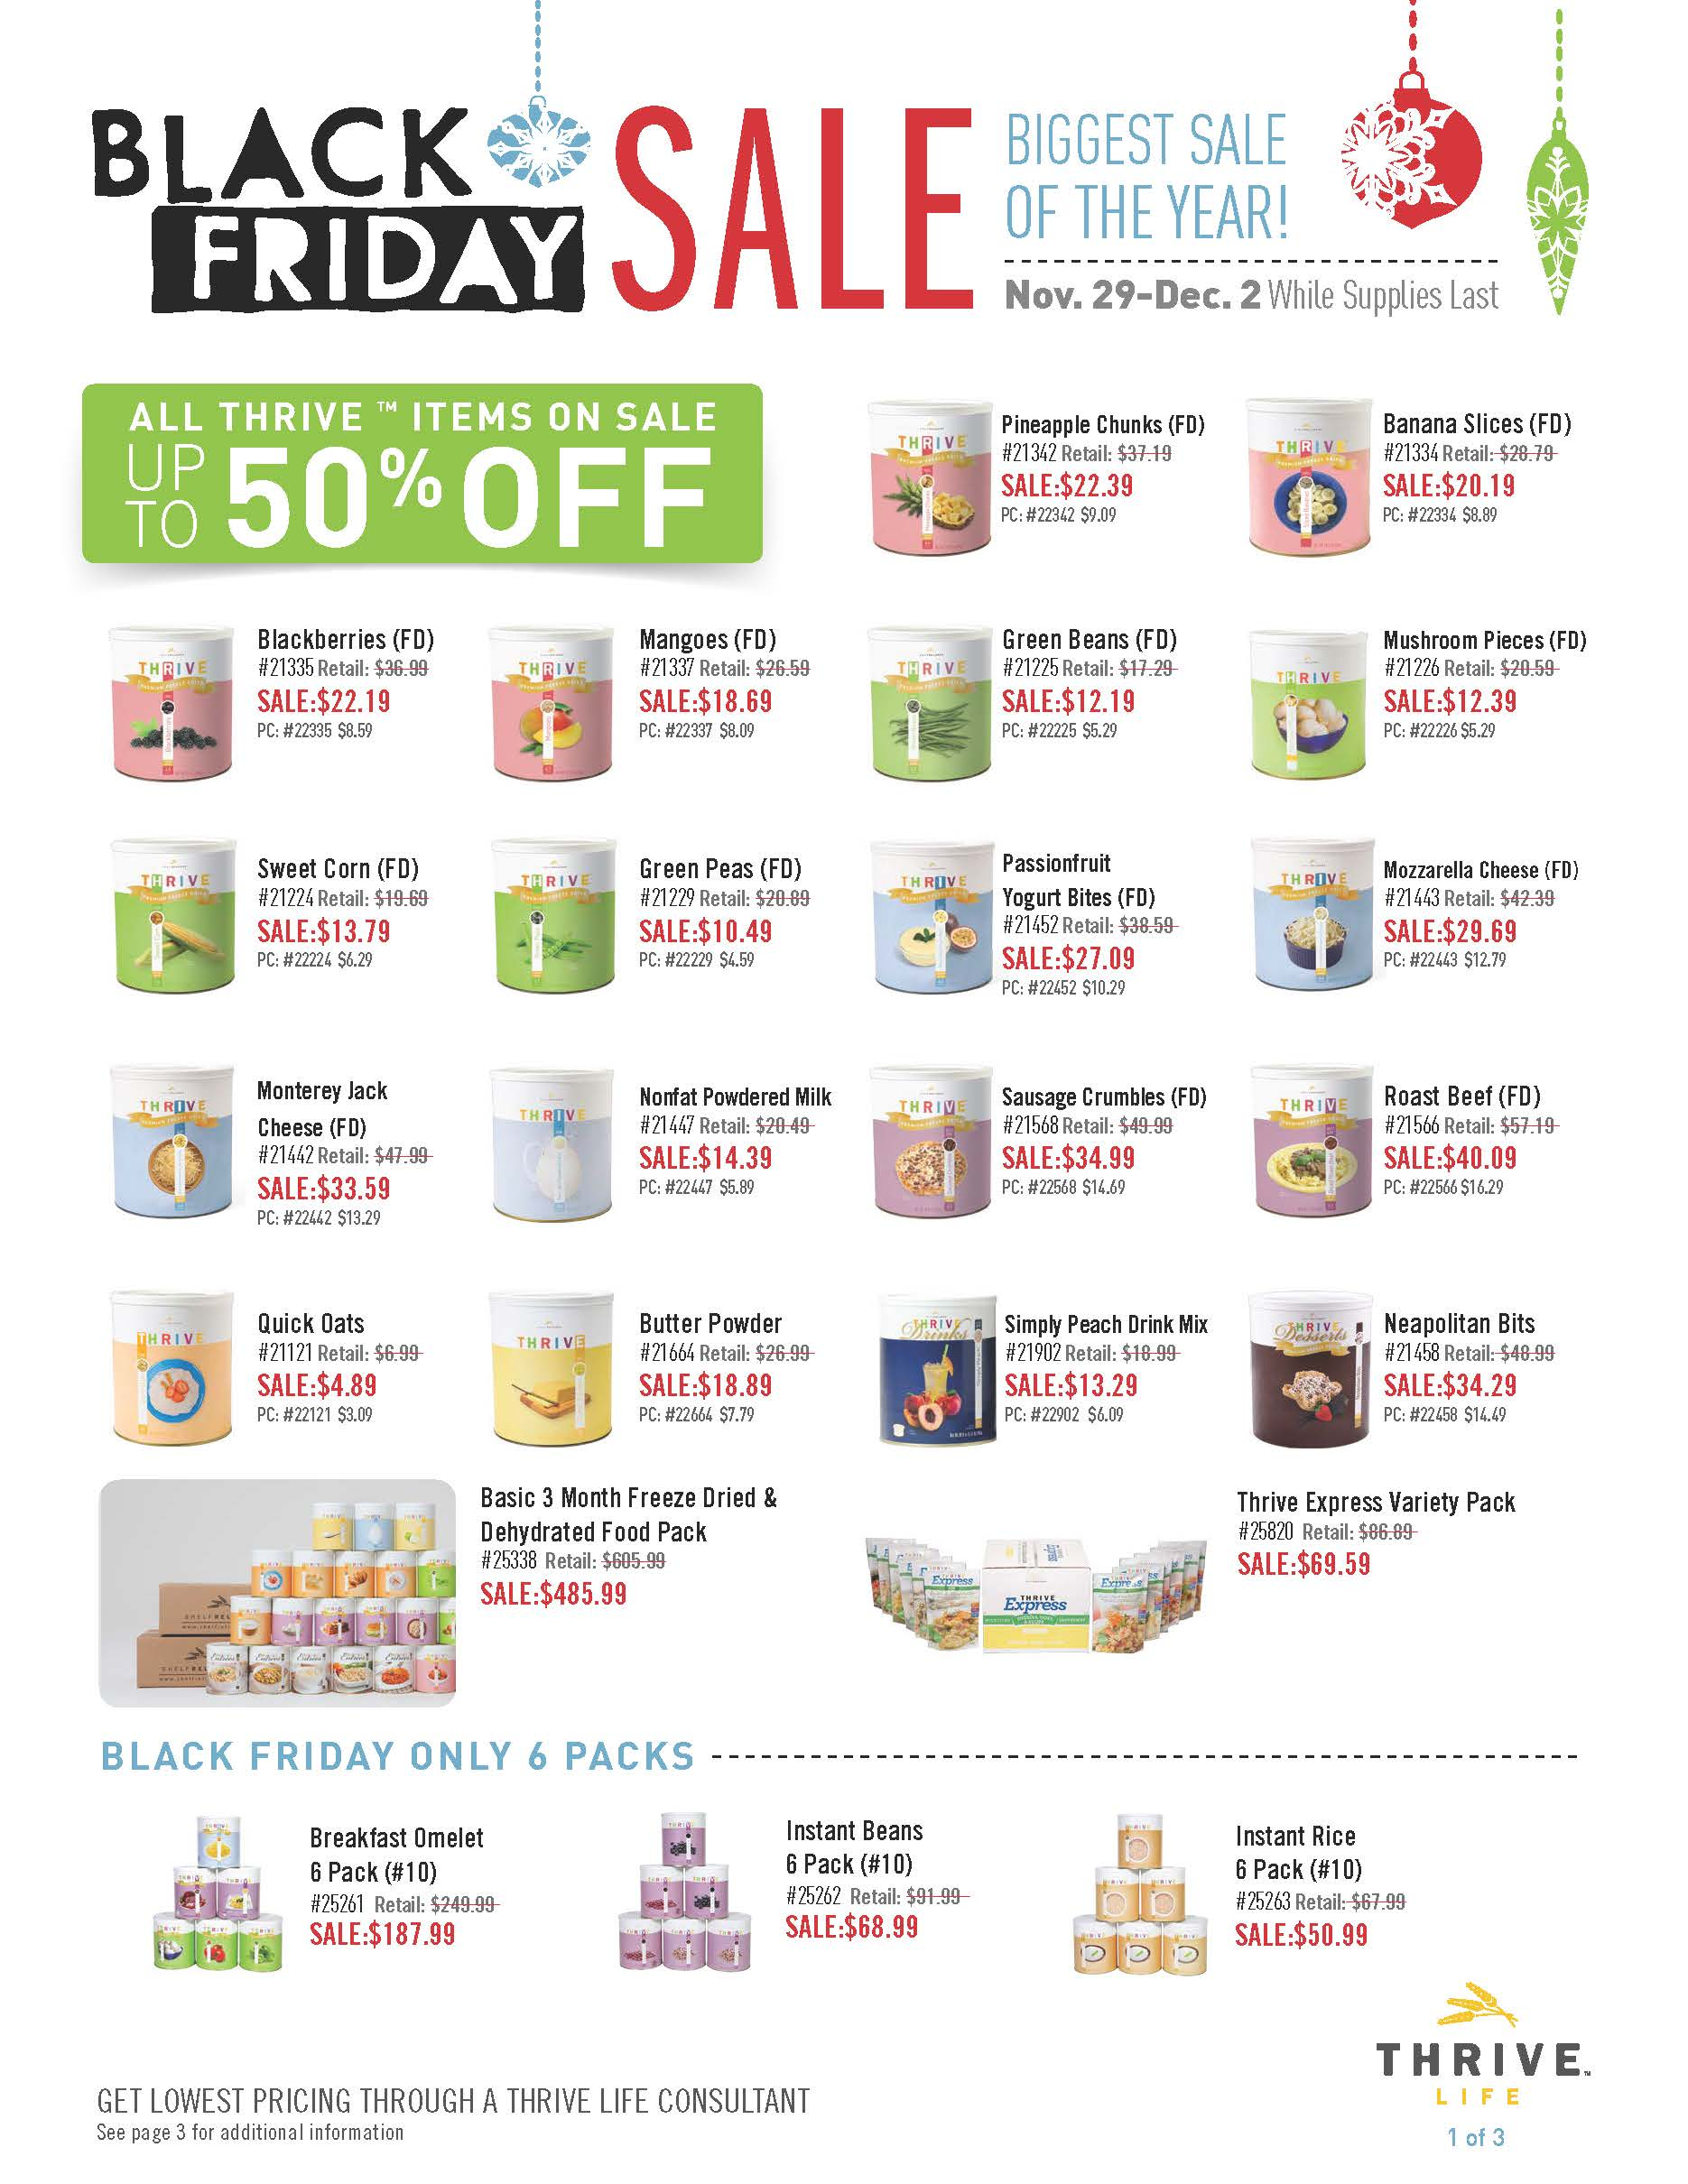 Make sure you get a case of these individual items on sale for an additional 5% savings computed in the pricing.  For example, sweet peas are 50% off.  IF YOU BUY A CASE OF SWEET PEAS, THEY ARE 55% OFF.  THIS CANNOT BE BEAT!